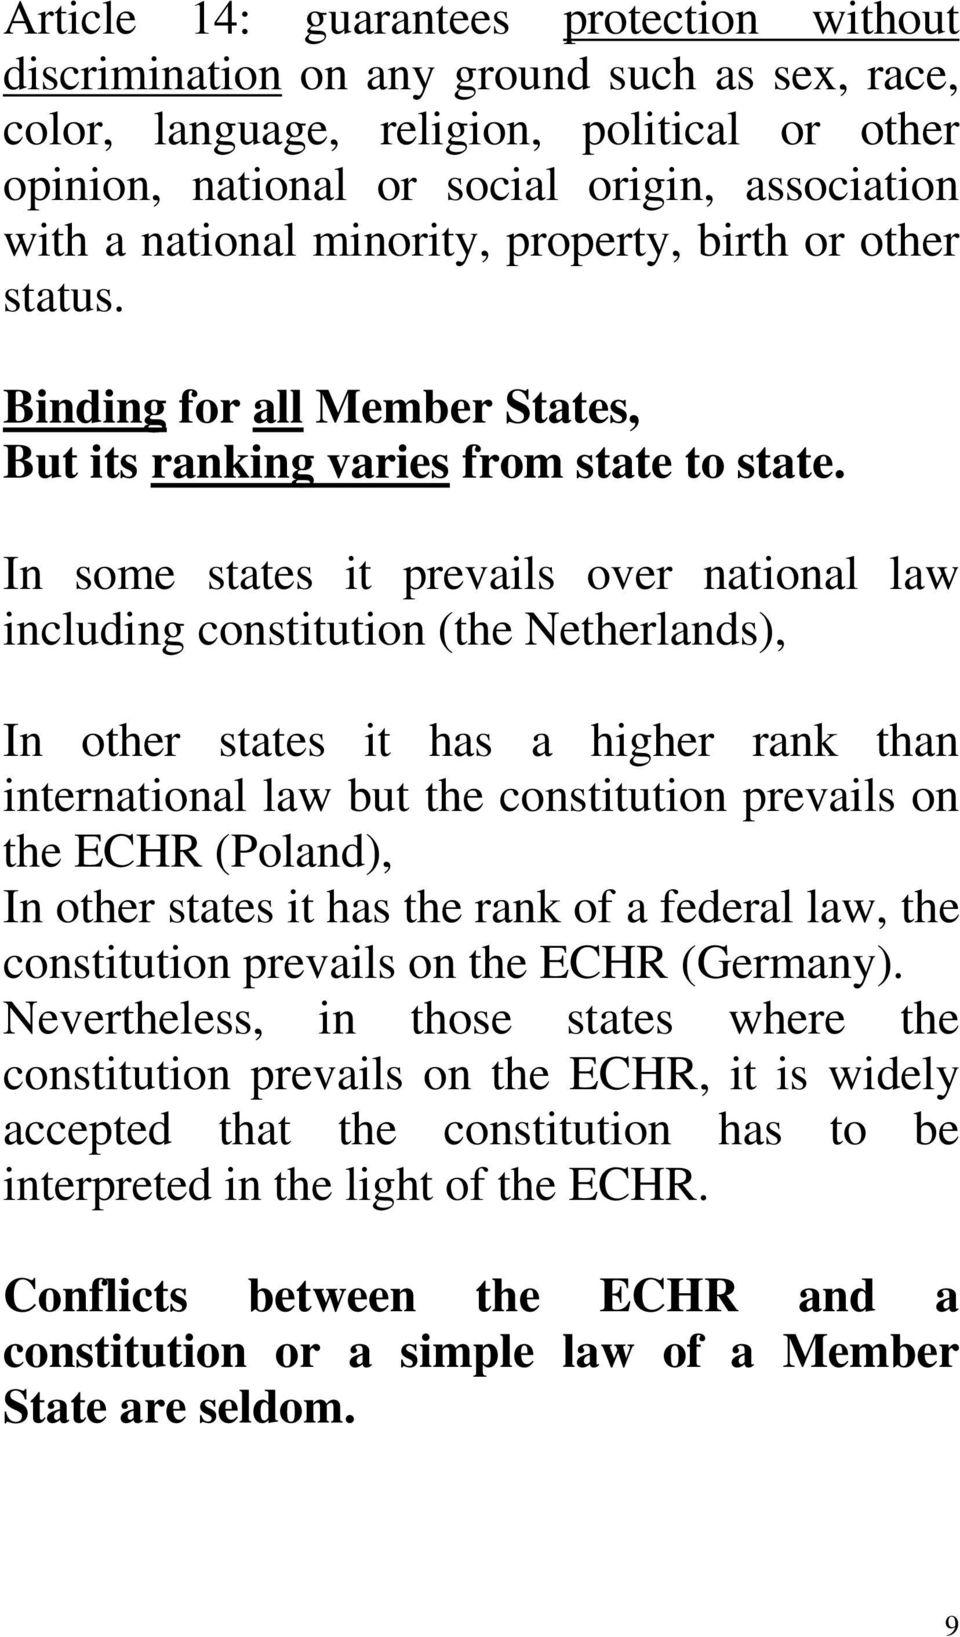 In some states it prevails over national law including constitution (the Netherlands), In other states it has a higher rank than international law but the constitution prevails on the ECHR (Poland),